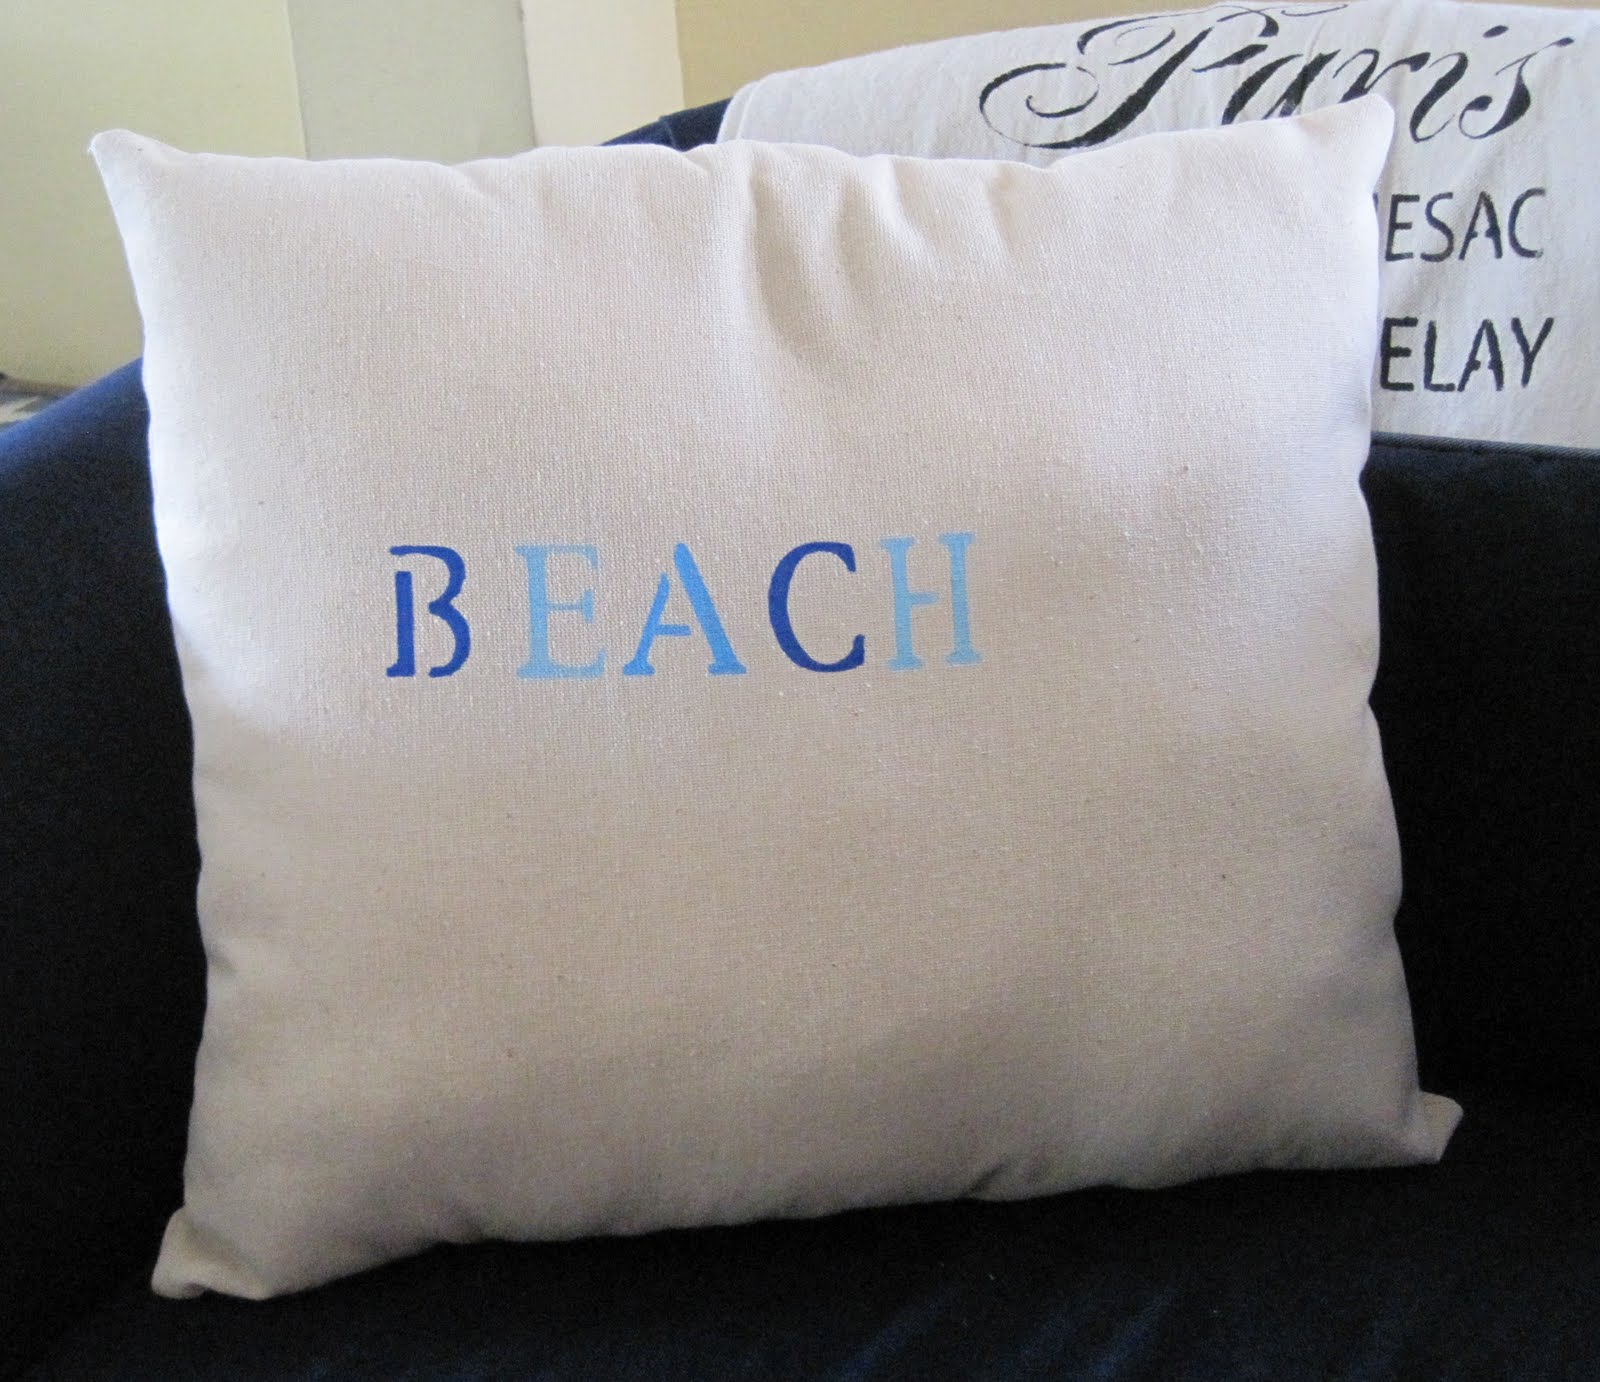 w cushion shipping decor vacation cases pillows com home pillow beach aliexpress word blue throw get chinese free style burlap wholesale on and plant buy outdoor